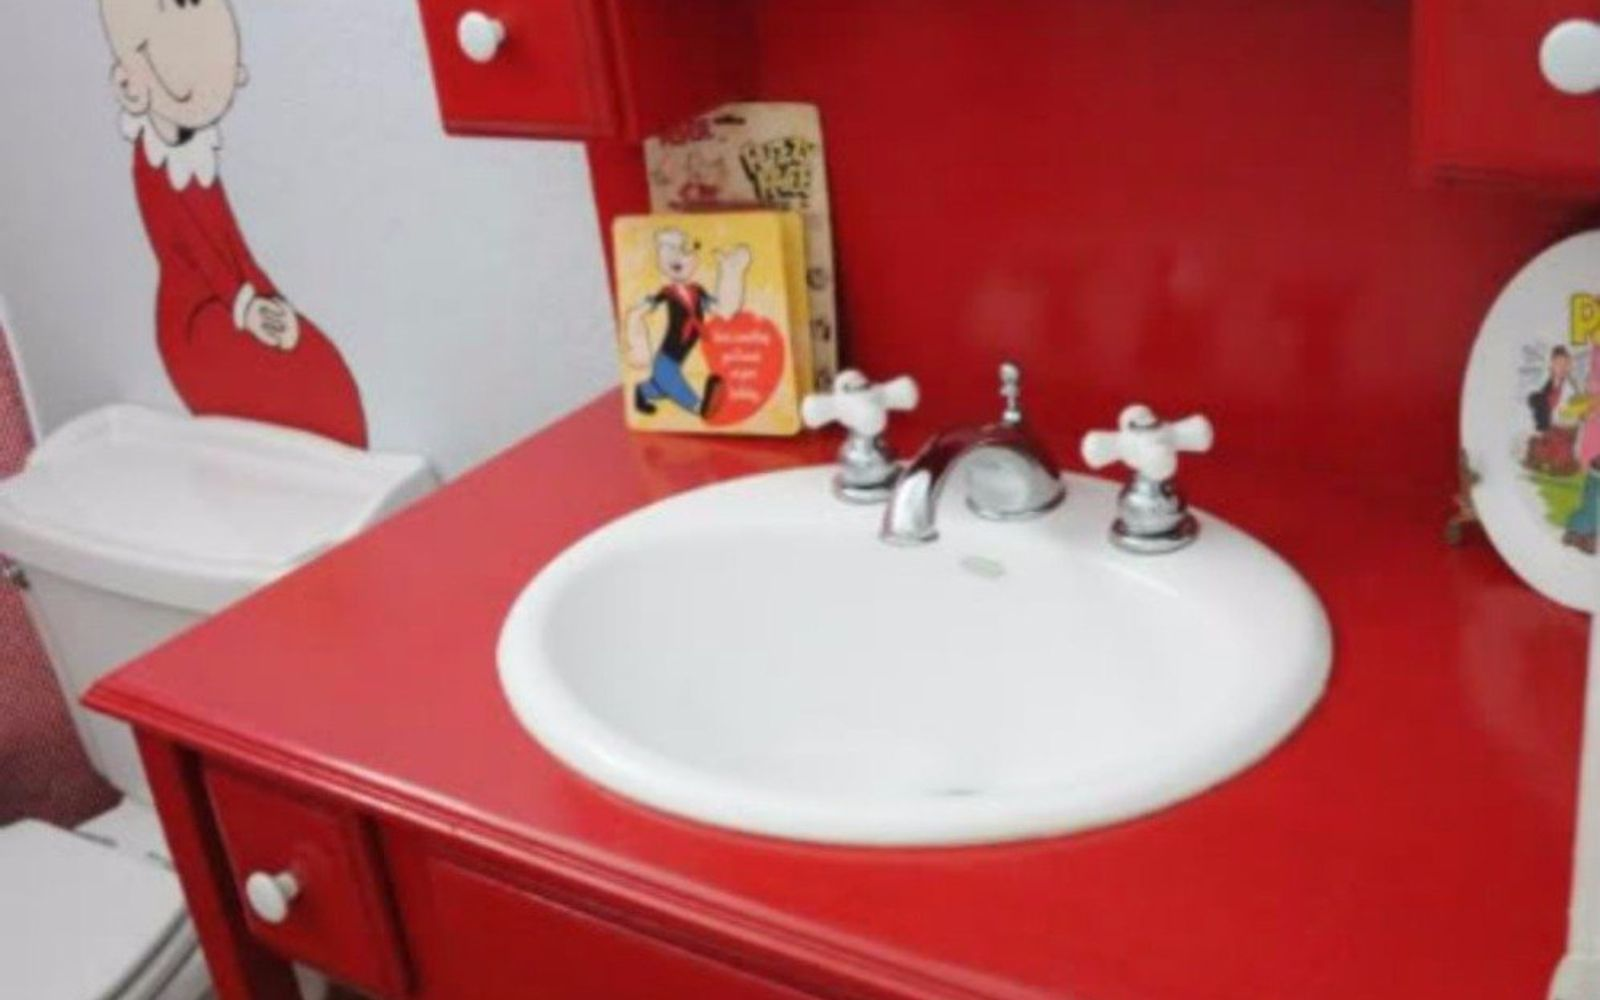 s give your kids the coolest bathroom with these 13 jaw dropping ideas, bathroom ideas, Make a tiny space pop with Popeye